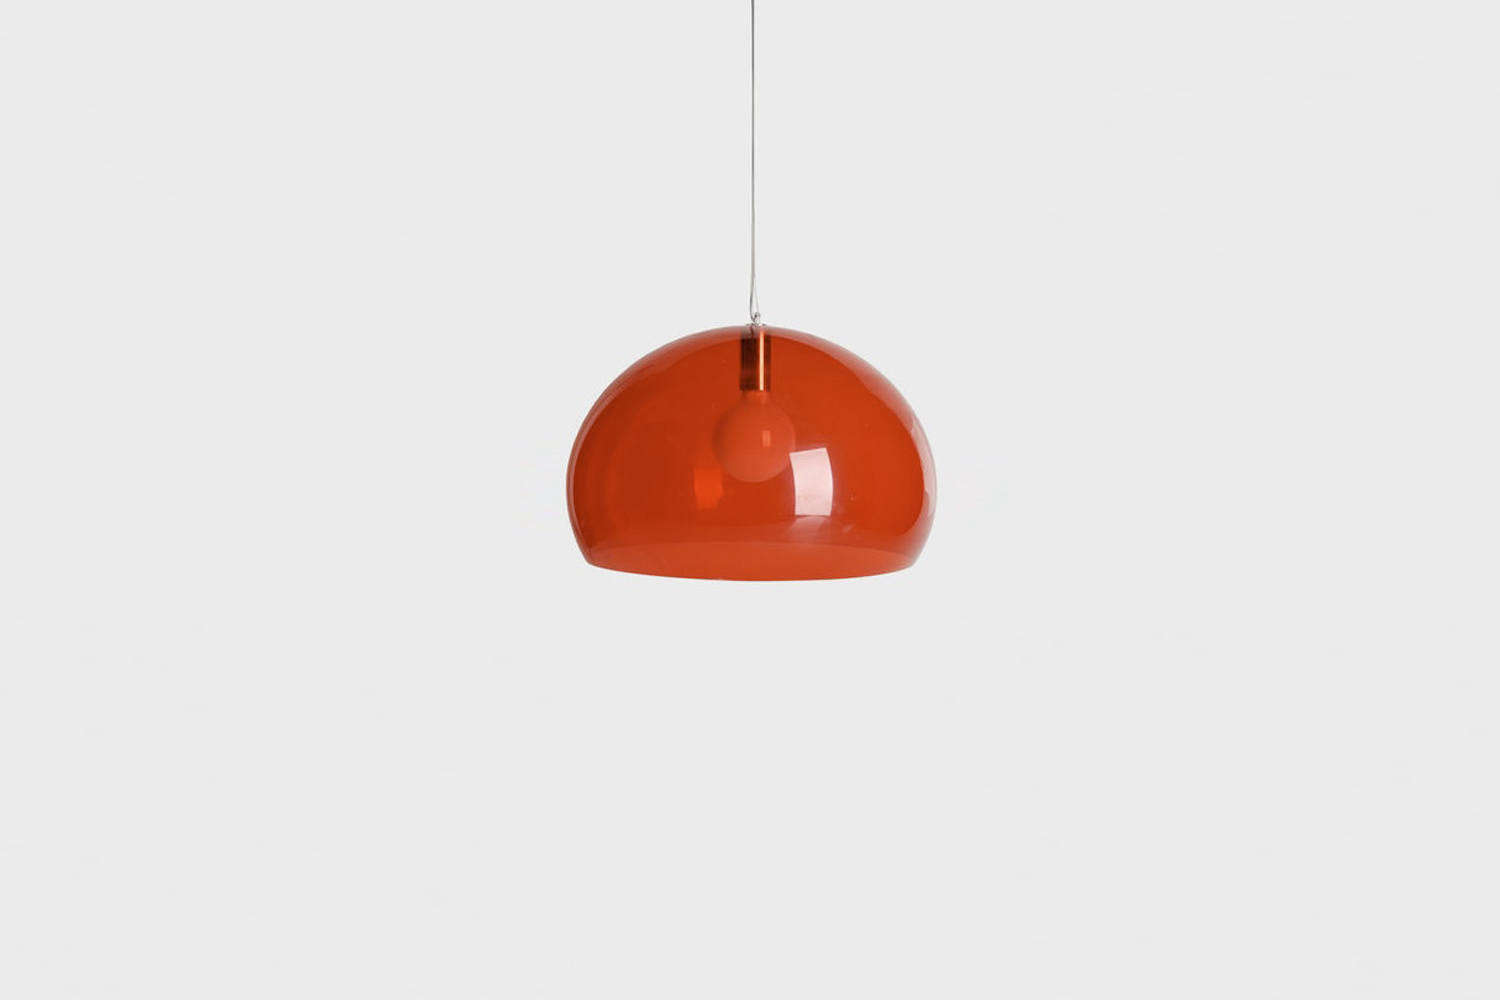 10 easy pieces colorful glass pendant lights remodelista 10 easy pieces colorful glass pendant lights aloadofball Image collections